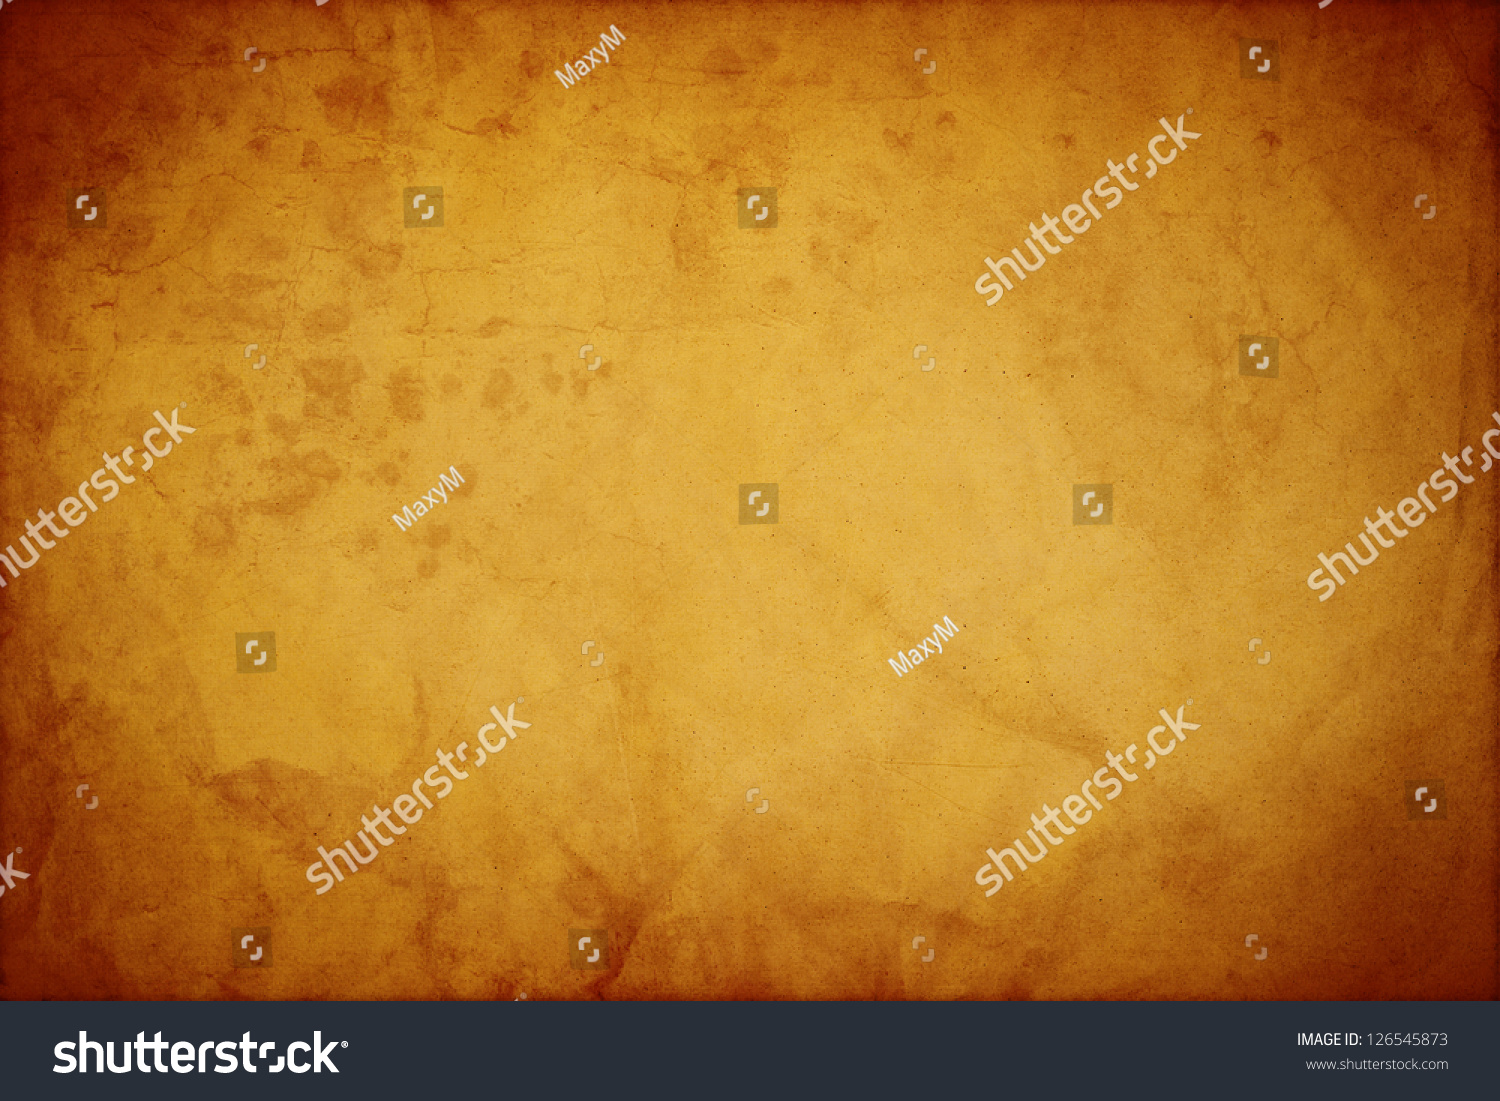 vintage empty page template old image stock illustration 126545873